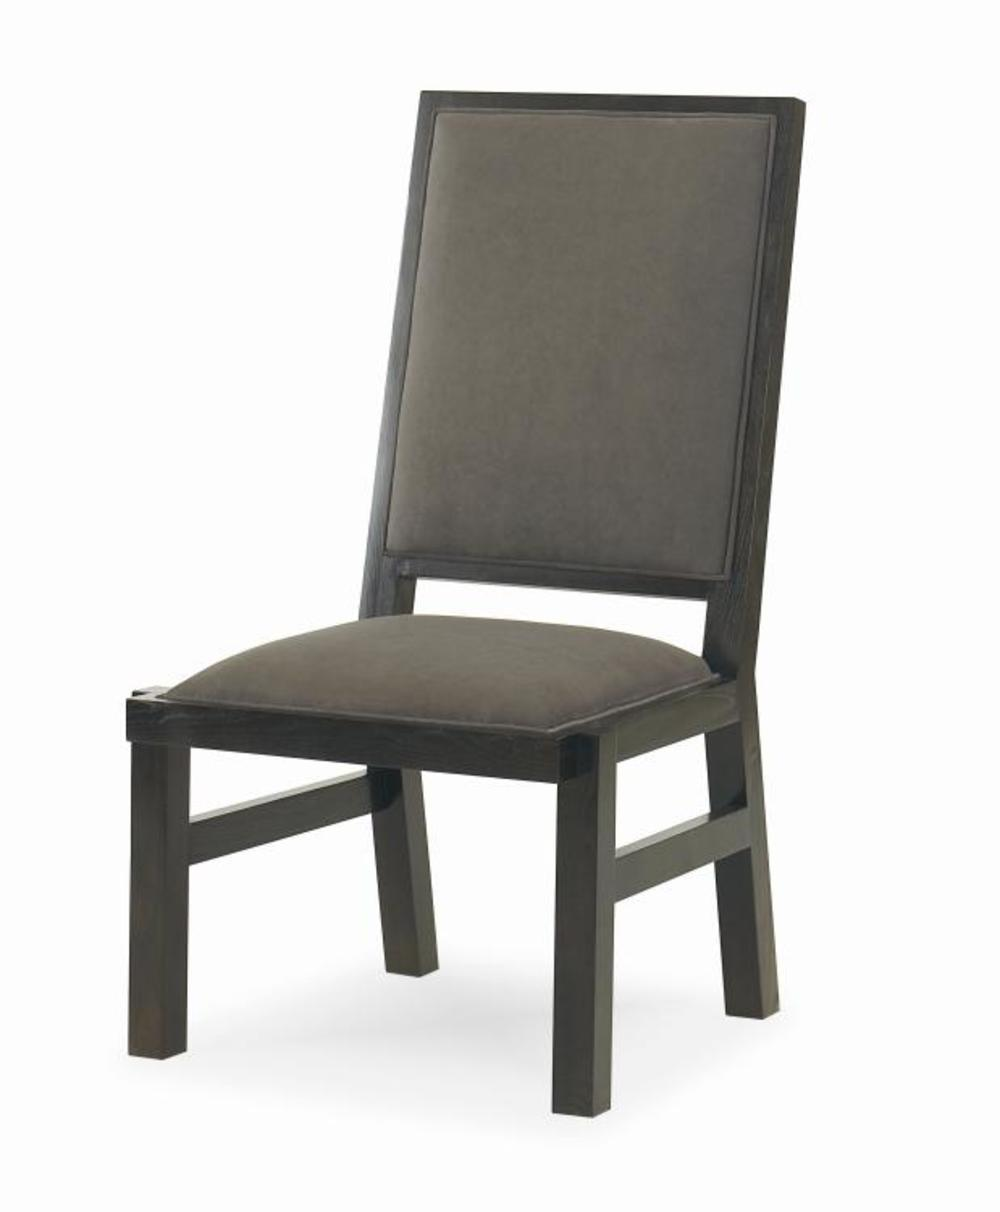 Century Furniture - Wrights Dining Side Chair